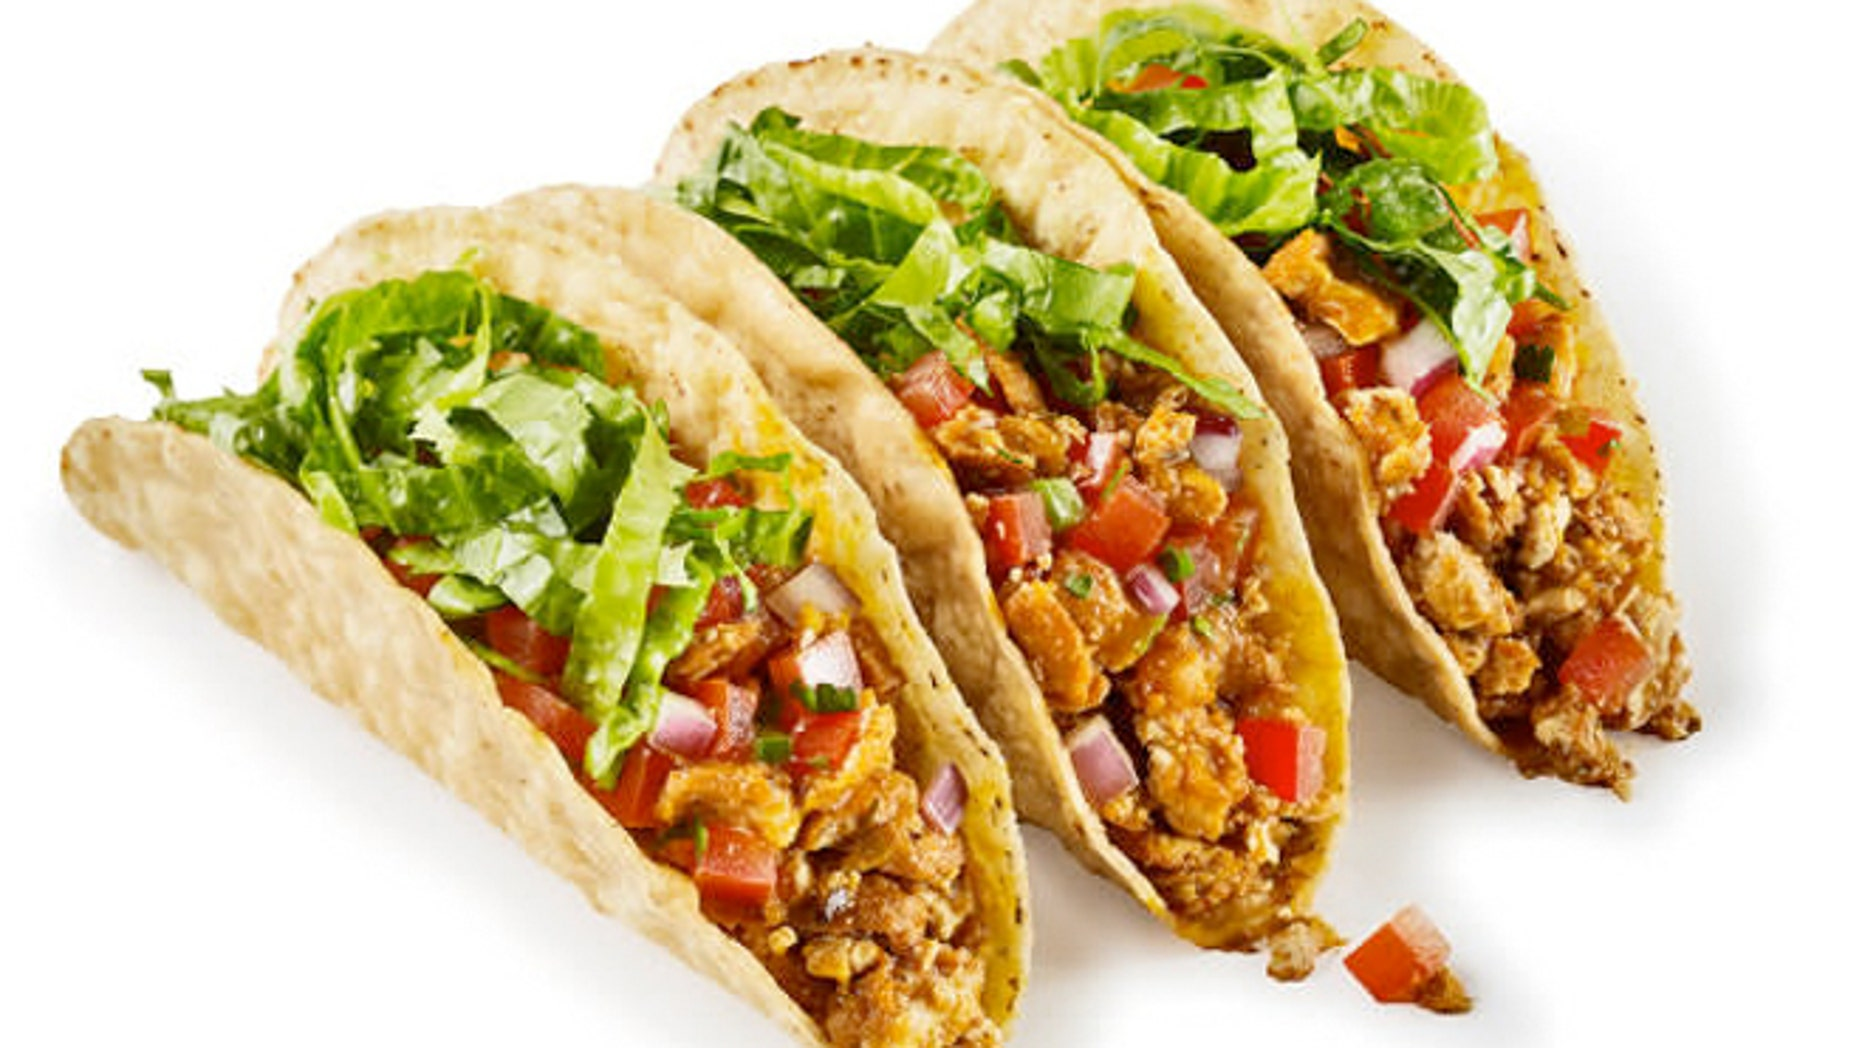 Sofritas, a spicy shredded tofu, is coming to a Chipotle near you.